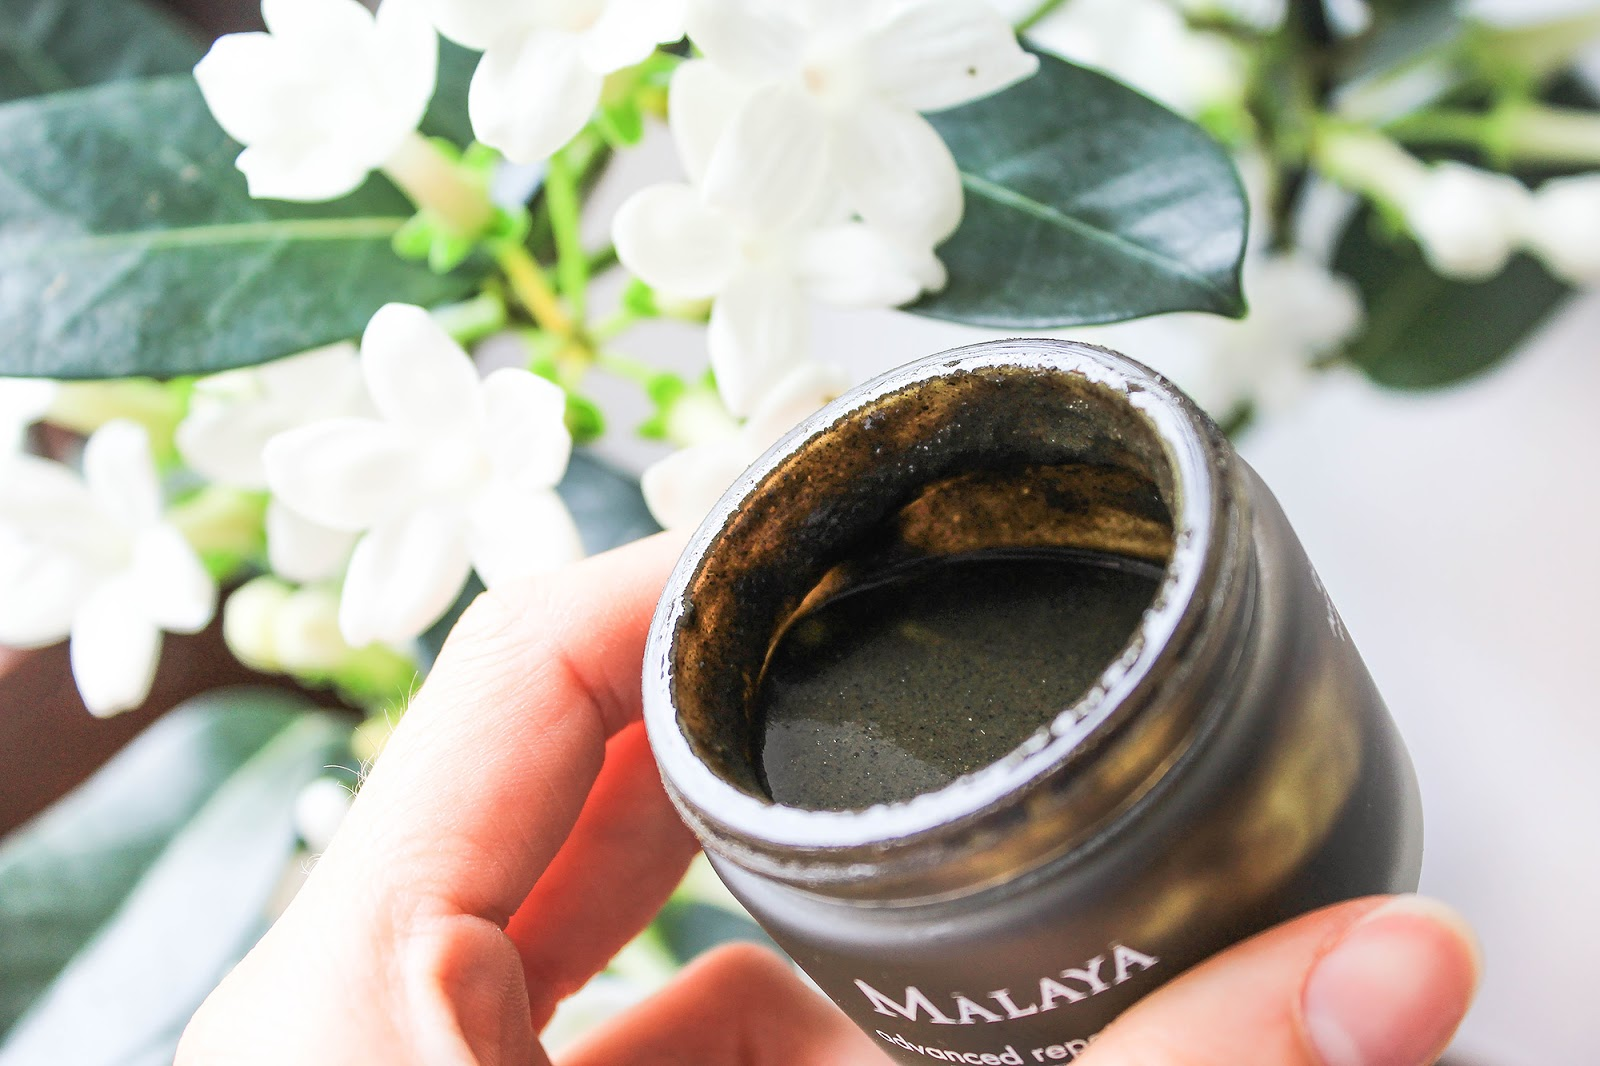 Malaya Organics Advanced Repair Mask Neem Honey Herbal Complex. Runny consistency, gritty